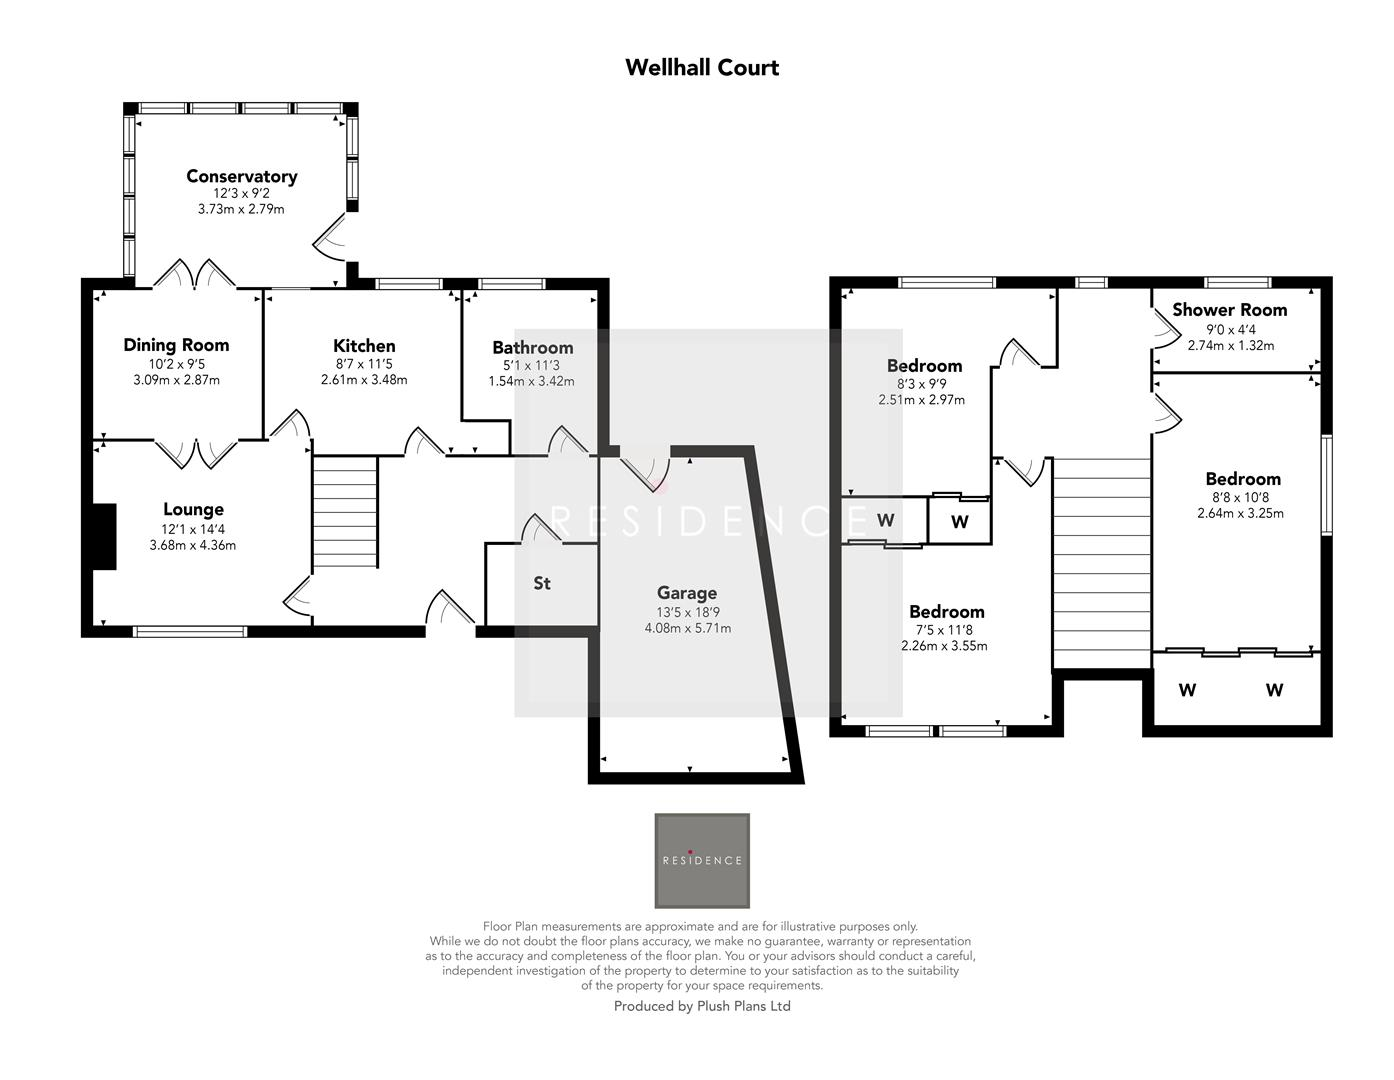 5 Wellhall Court_fp copy.jpg